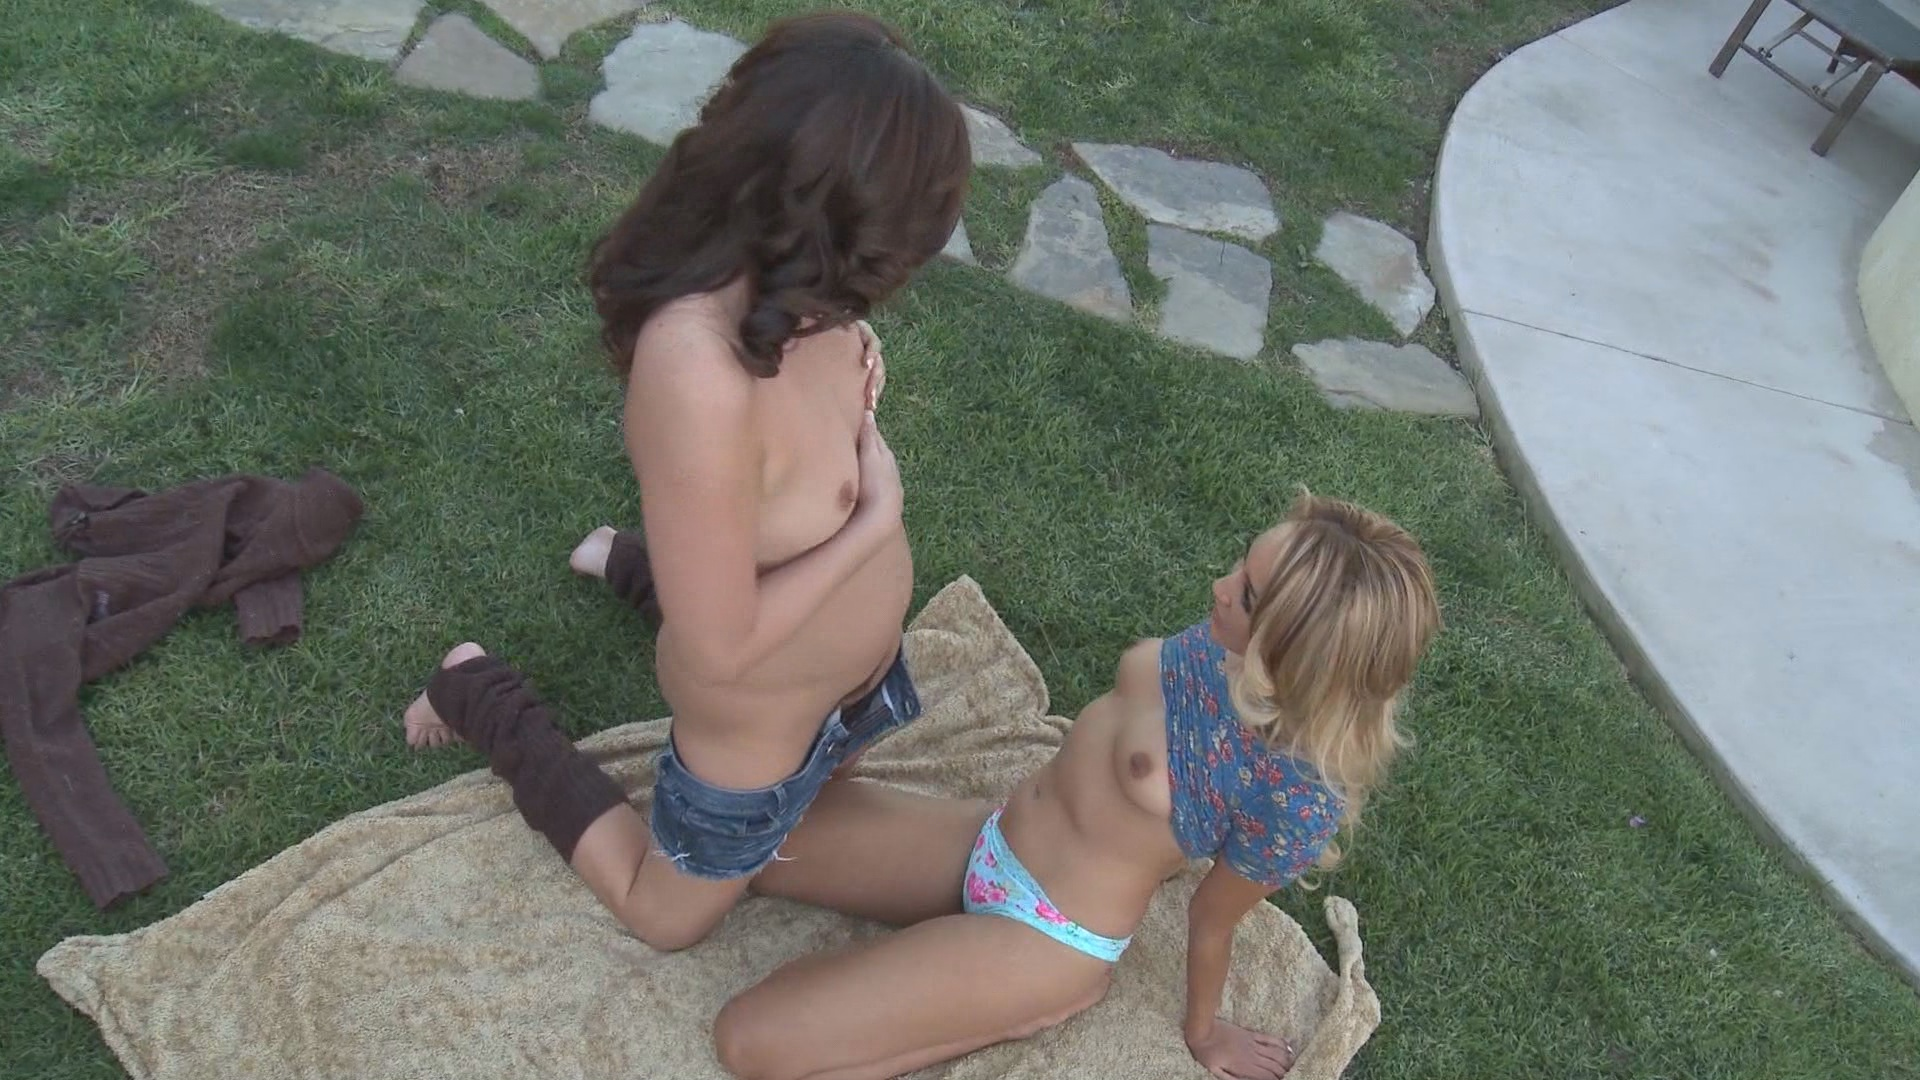 ATK Bushy Outdoors / Hairy pussy teen porn! In the beginning there was bush and it was all good. Nude and natural was the way nature intended and we agree!